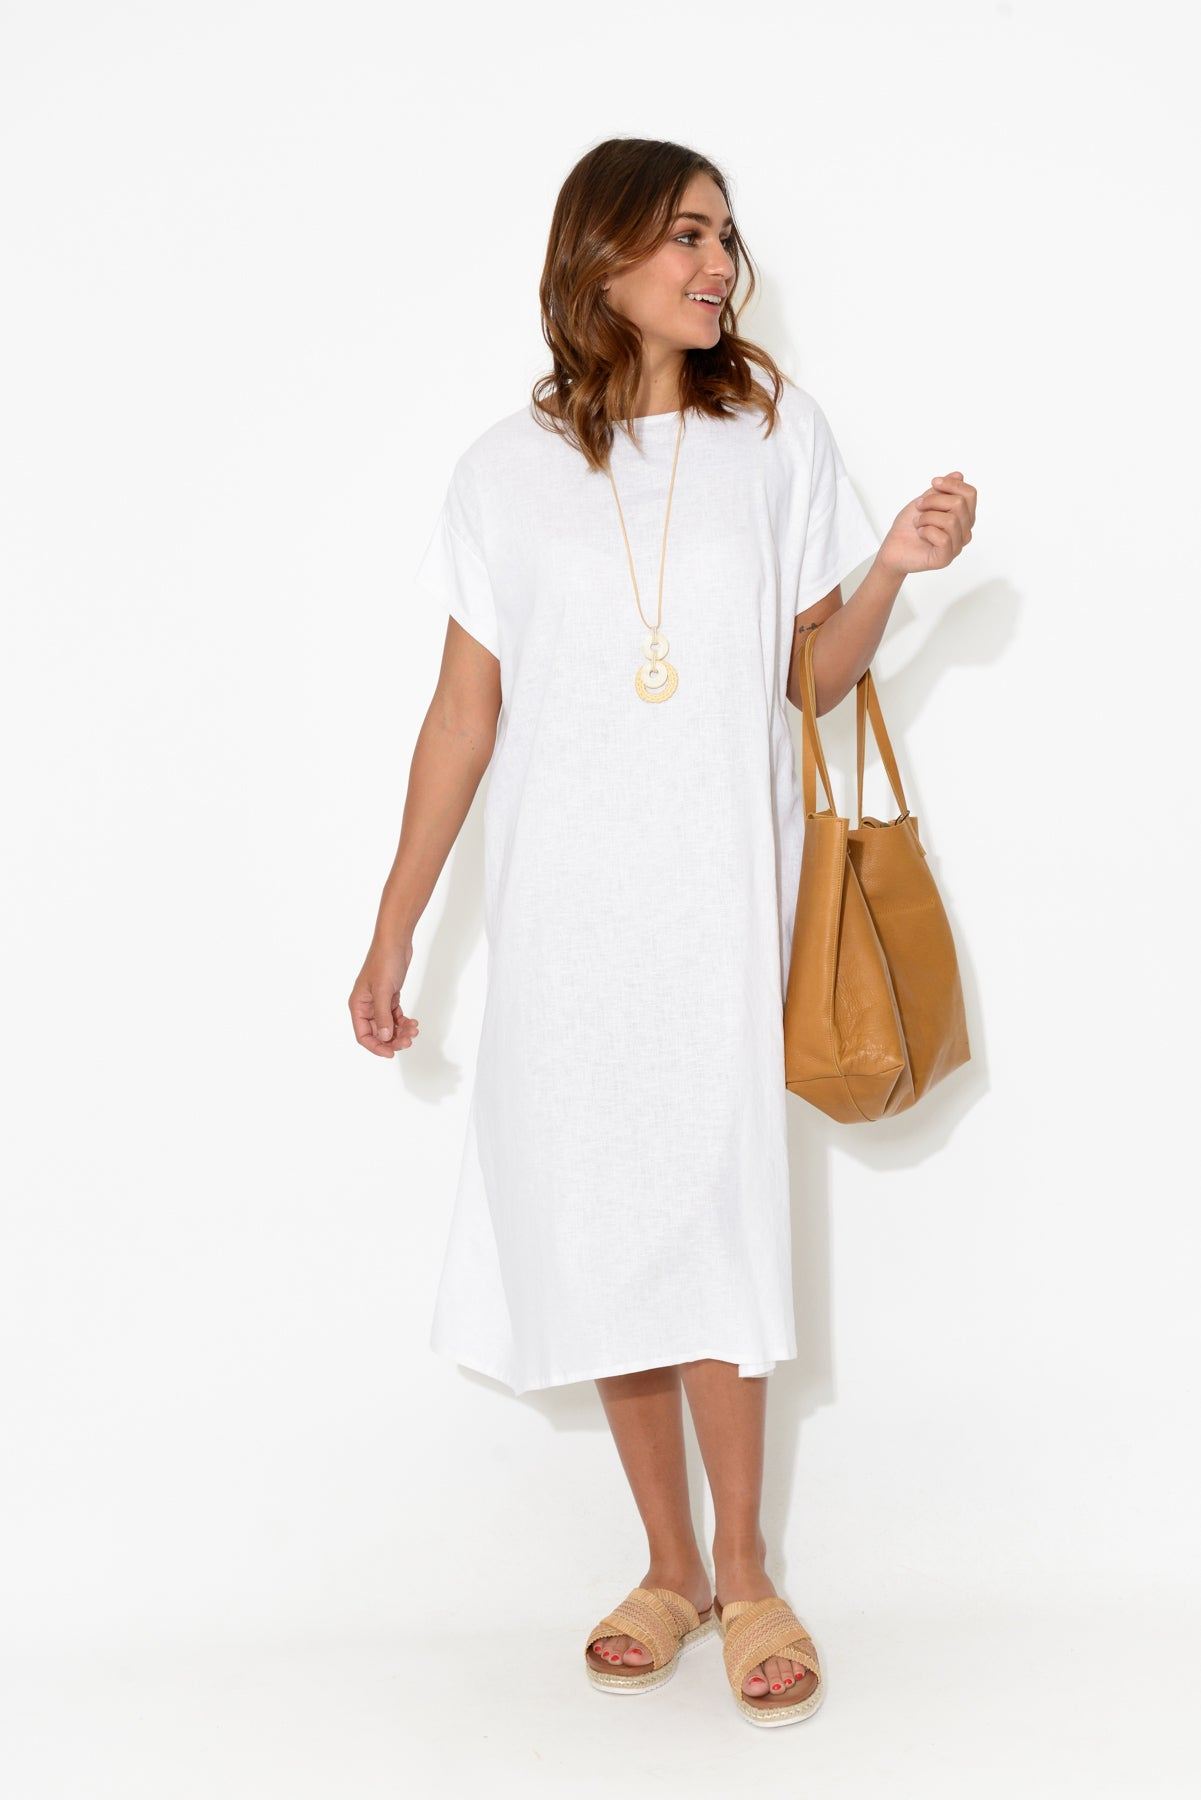 Nova White Gather Back Dress - Blue Bungalow